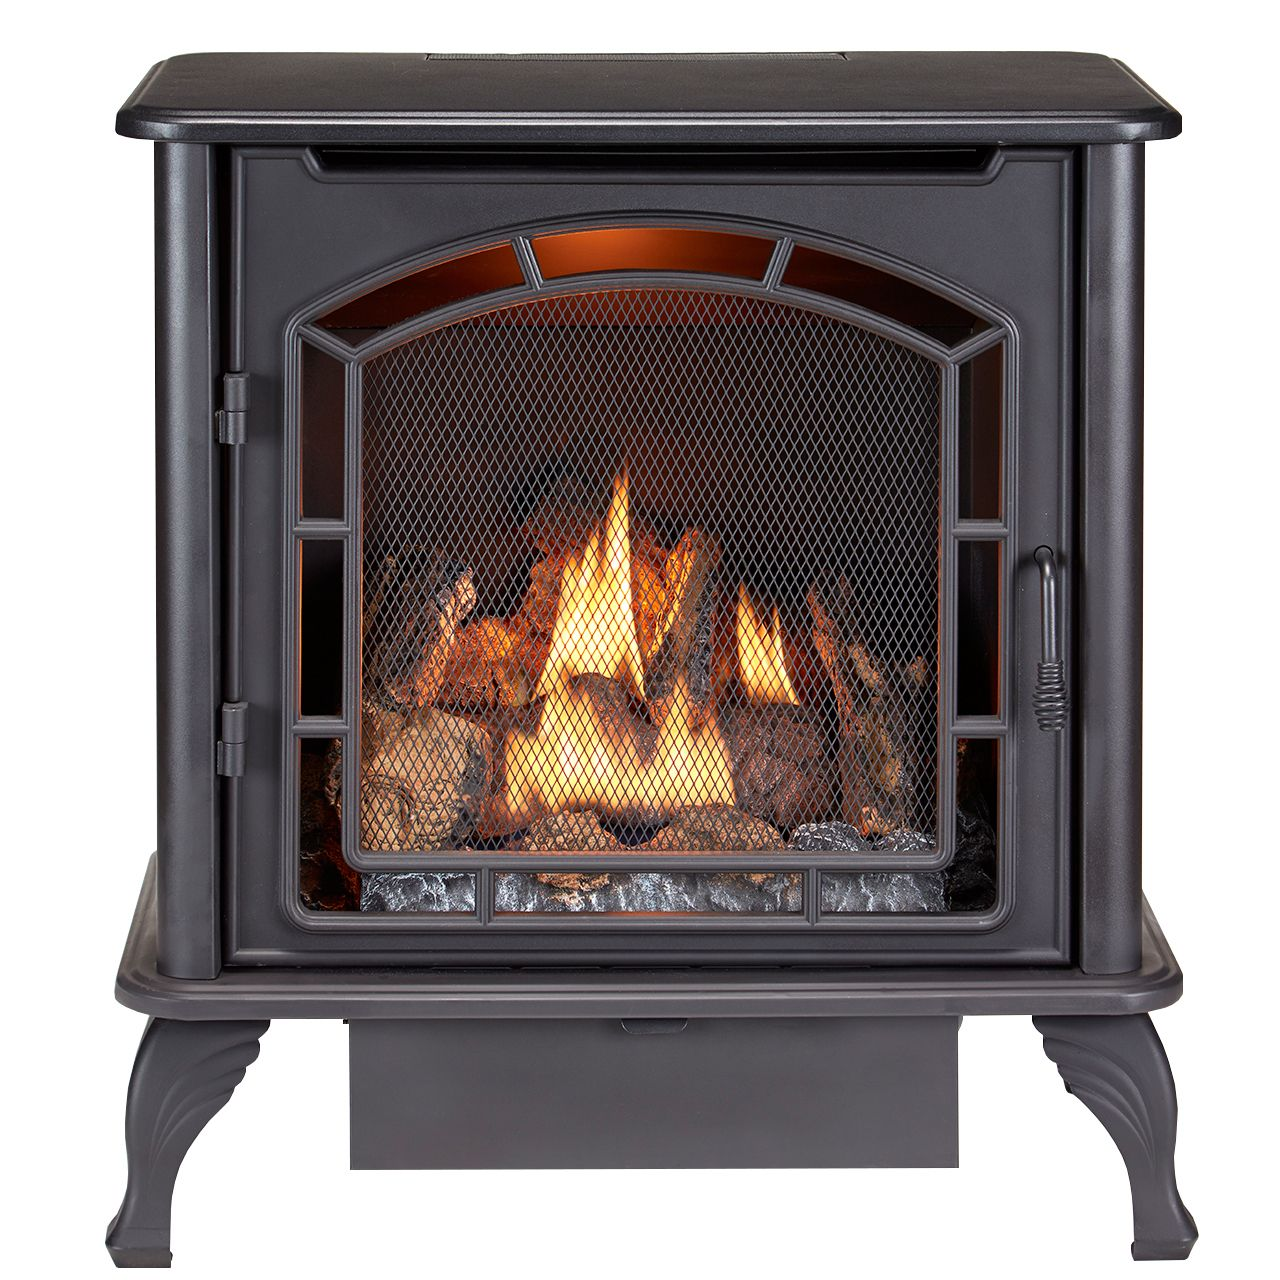 Duluth dual fuel ventless gas stove model df25sms